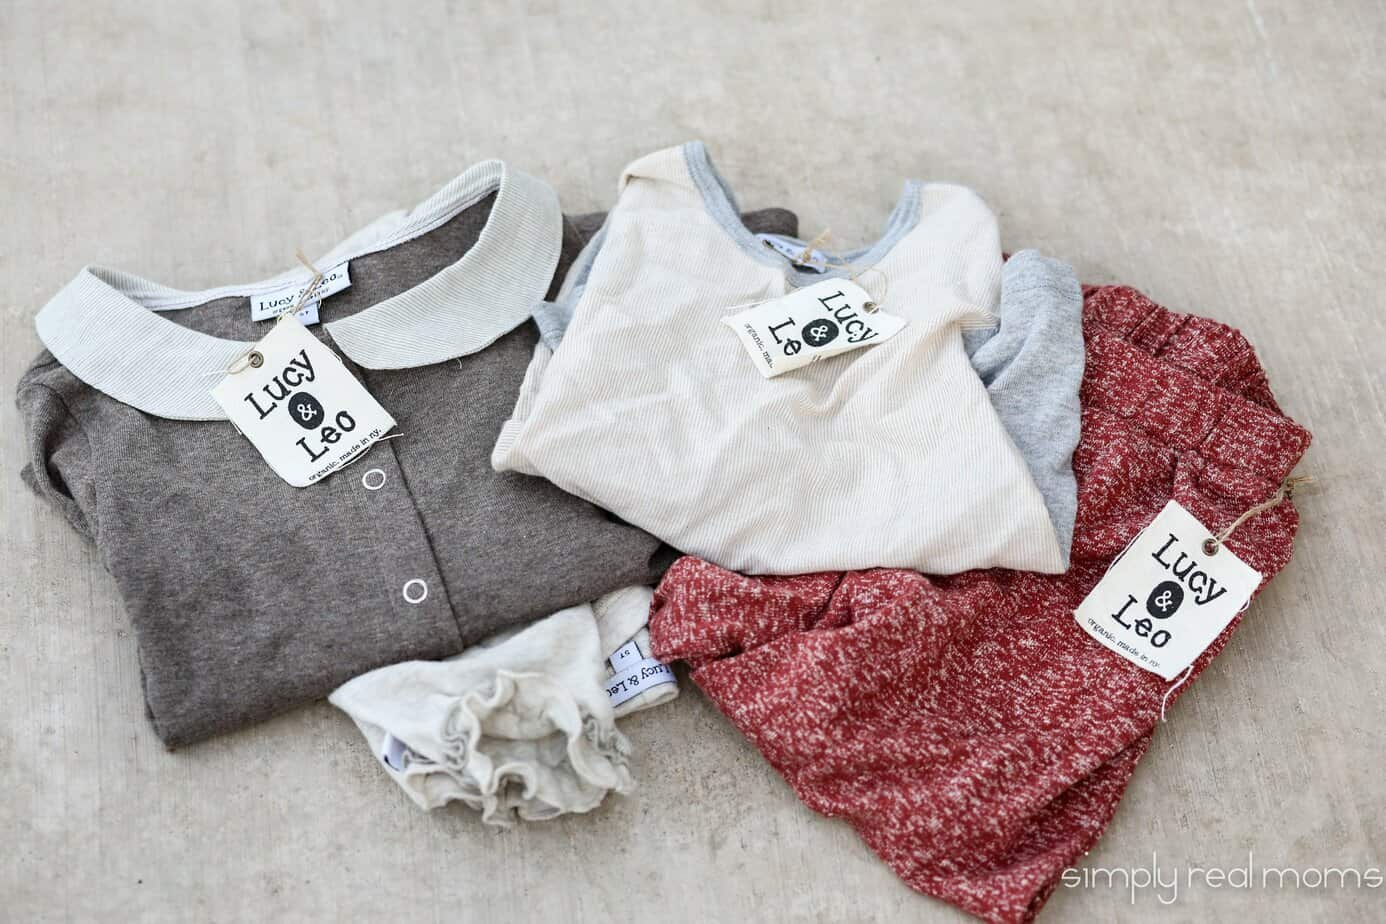 Lucy & Leo's Organic Clothing for Kids 20